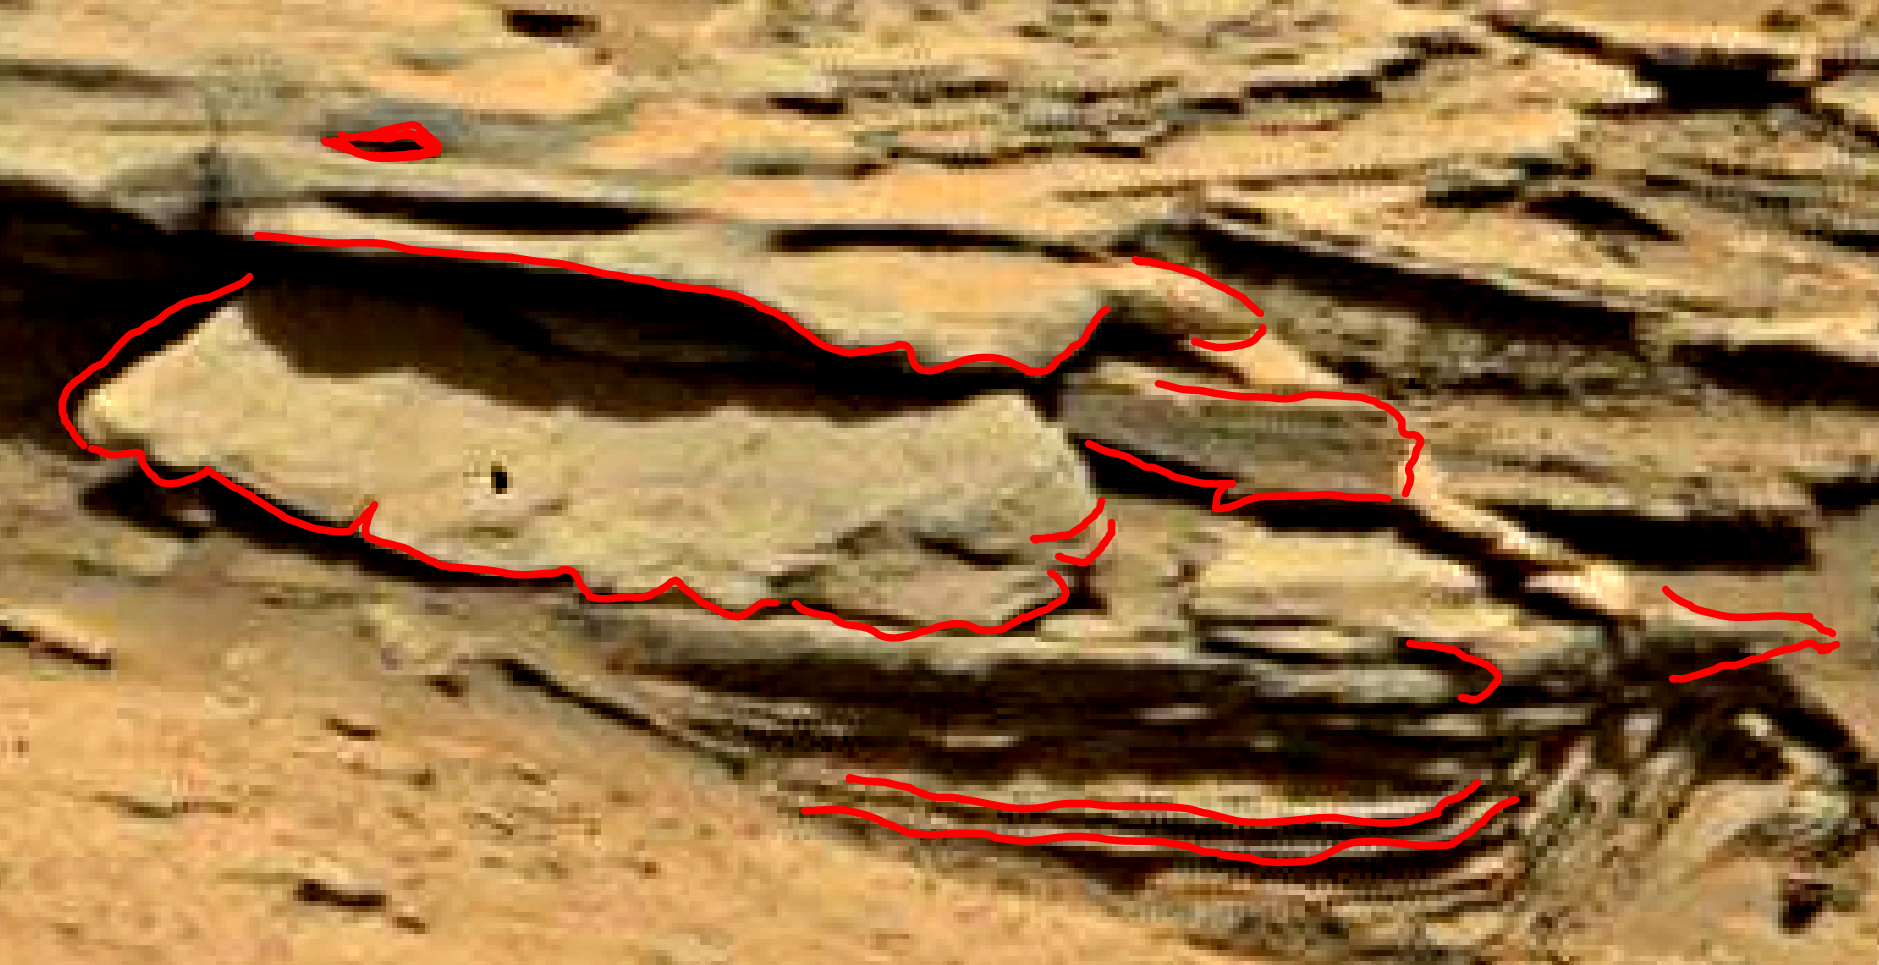 mars sol 1353 anomaly-artifacts 18a was life on mars